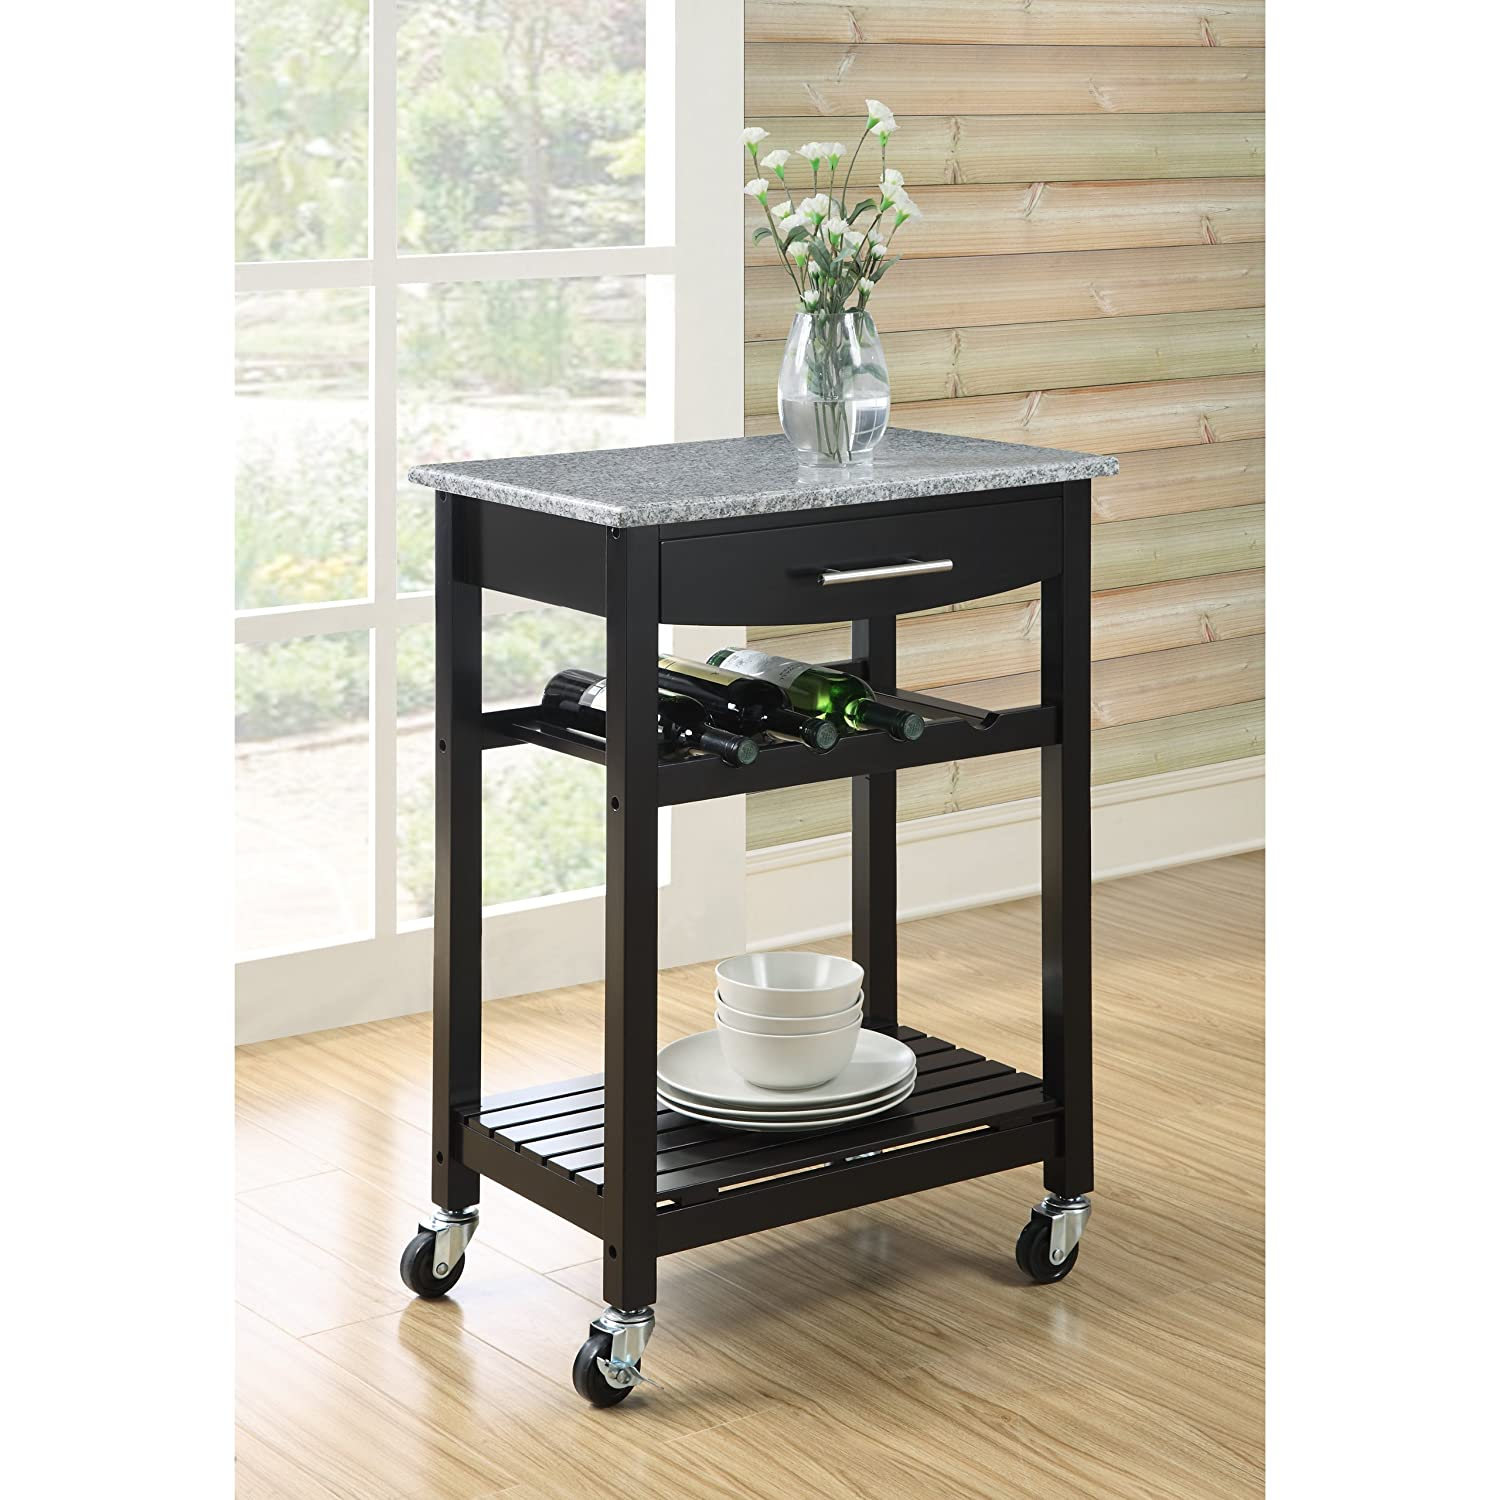 Attirant Amazon.com   Dorel Living Granite Top Kitchen Cart   Kitchen Islands U0026 Carts